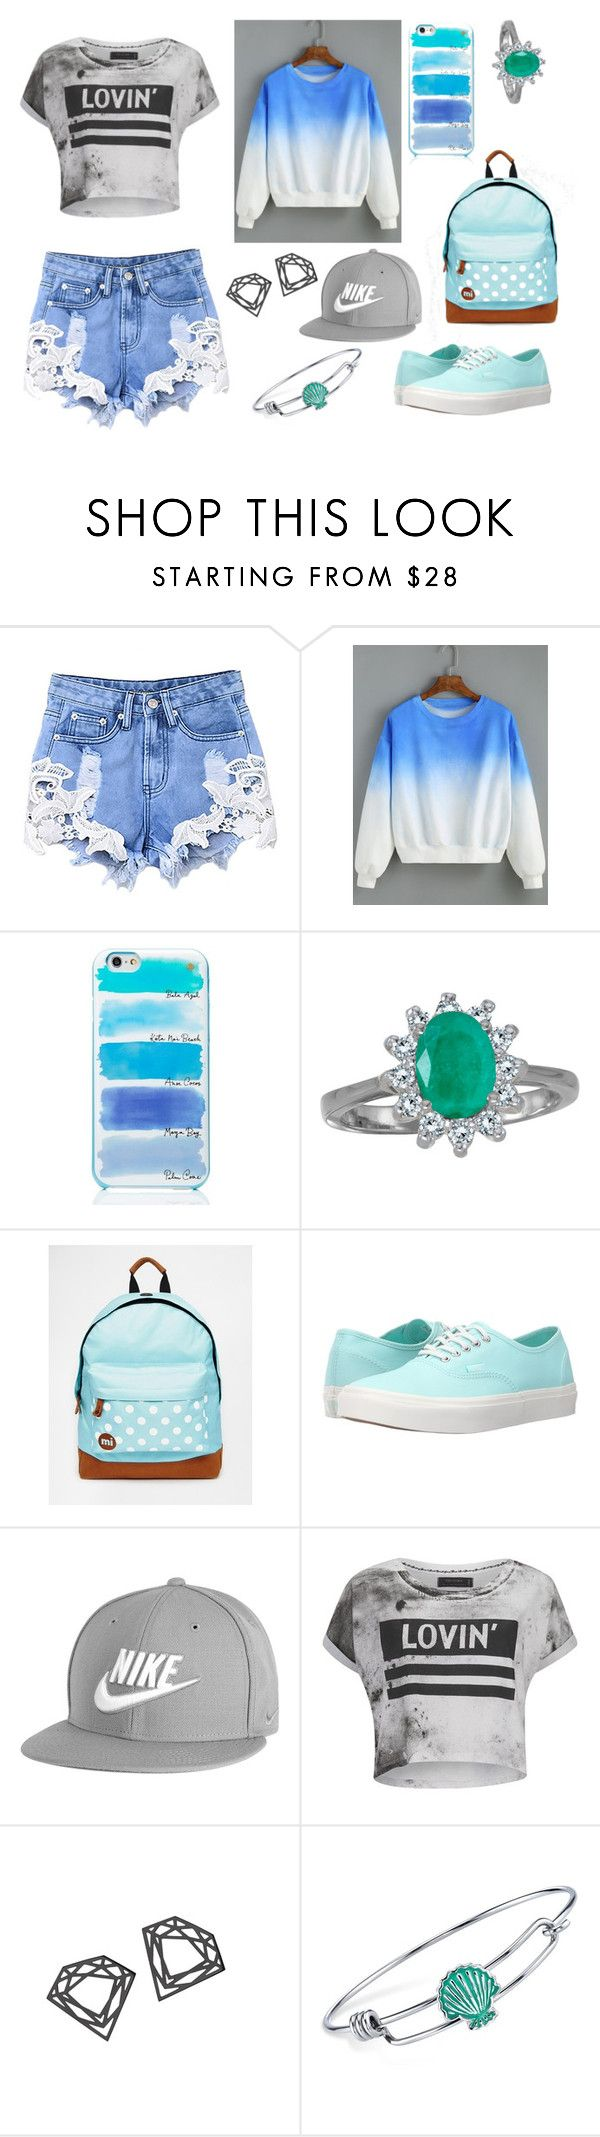 Outfit 20 by sarahcb2002 on Polyvore featuring Religion Clothing, Vans, Mi-Pac, Disney, BillyTheTree, Myia Bonner, NIKE and Kate Spade